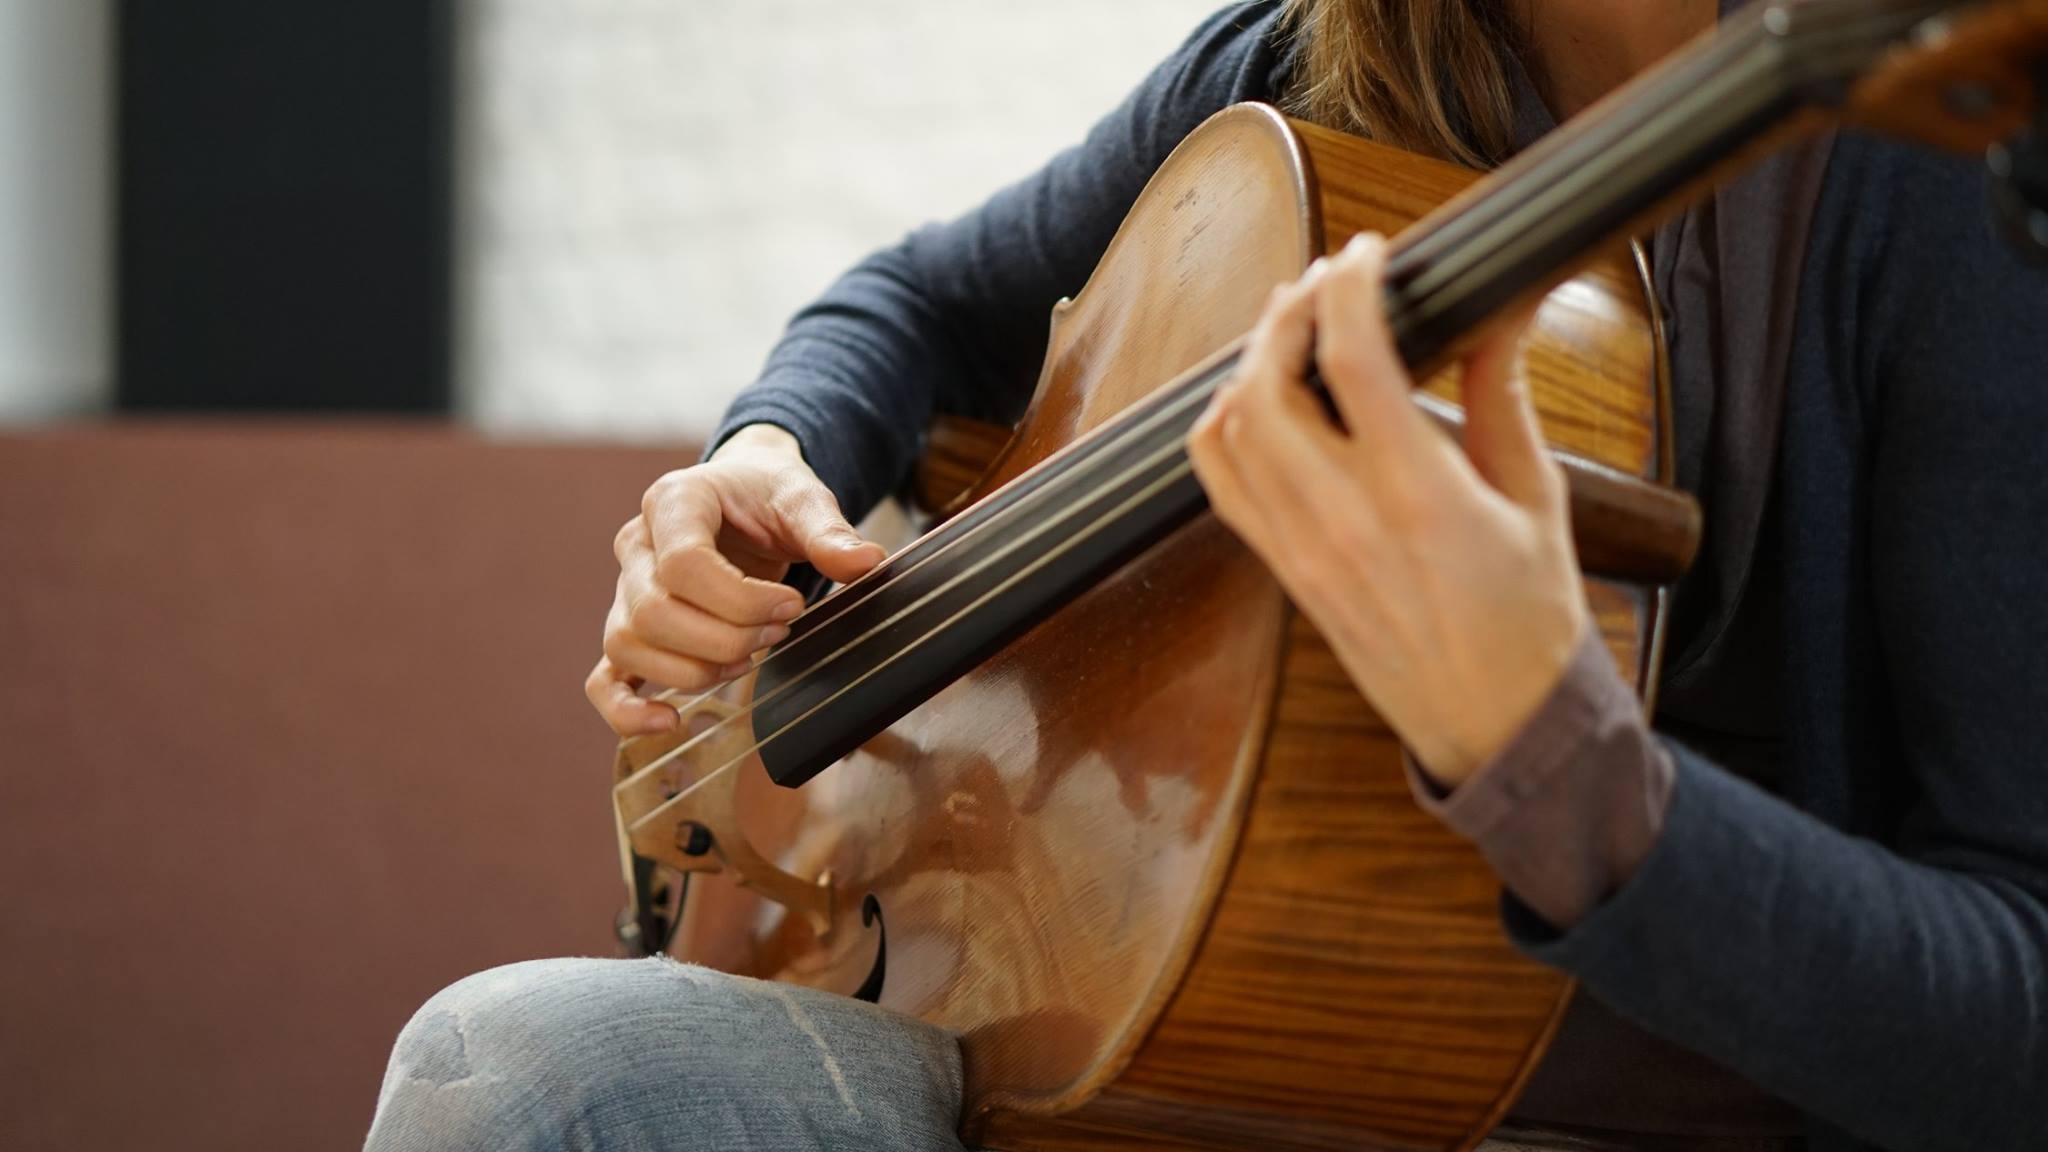 Cello, spielen